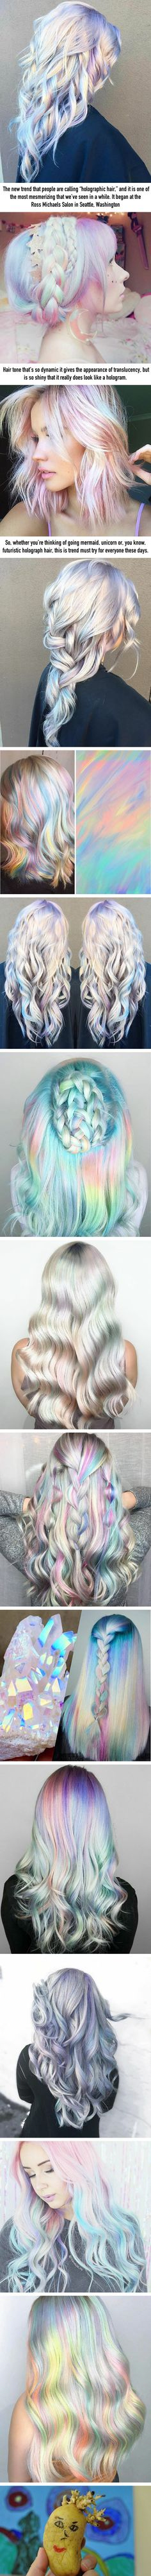 Holographic Hair Is the Fairidescent Dye Trend We've Been Waiting For Holographic Hair Is the Fairidescent Dye Trend We've Been Waiting For<br> More memes, funny videos and pics on Opal Hair, Rides Front, Coloured Hair, Unicorn Hair, Pretty Hairstyles, Short Hairstyle, Hairstyle Ideas, Party Hairstyle, Short Haircut